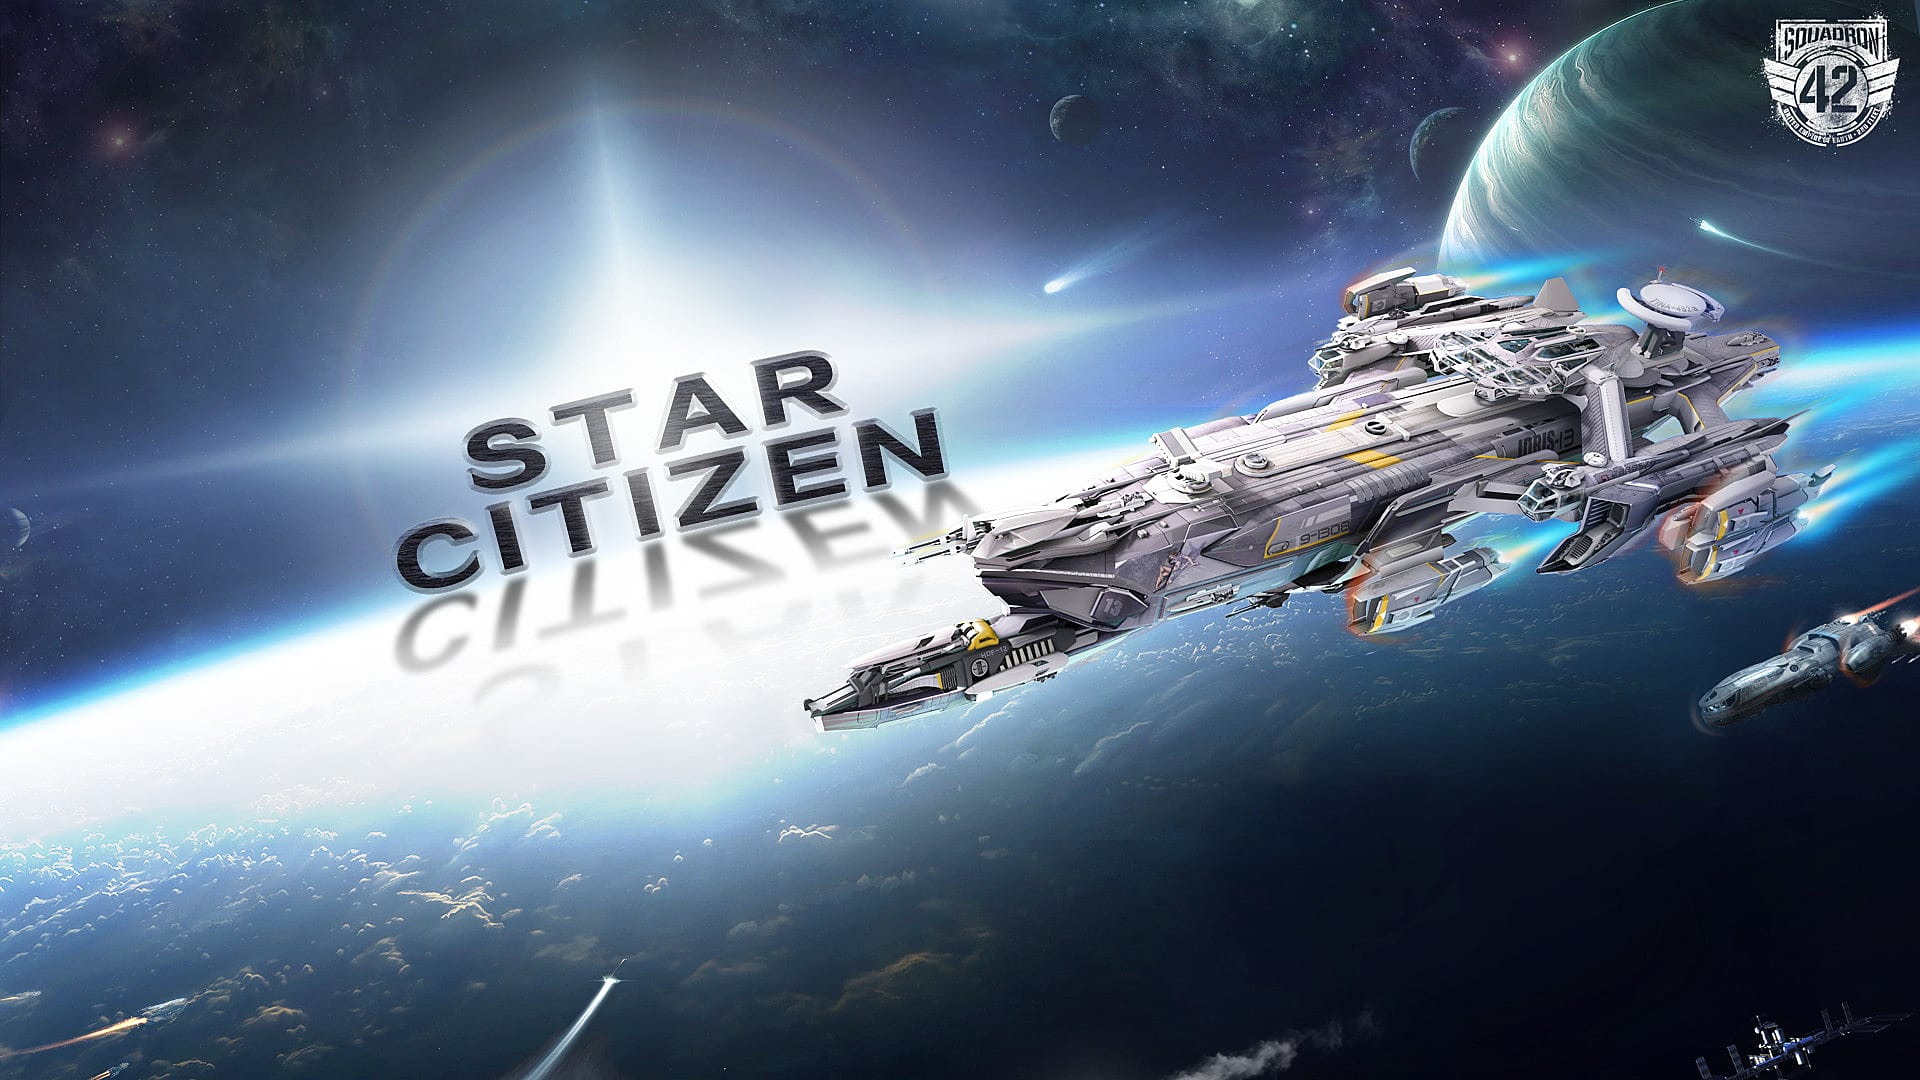 star citizen promoted ships